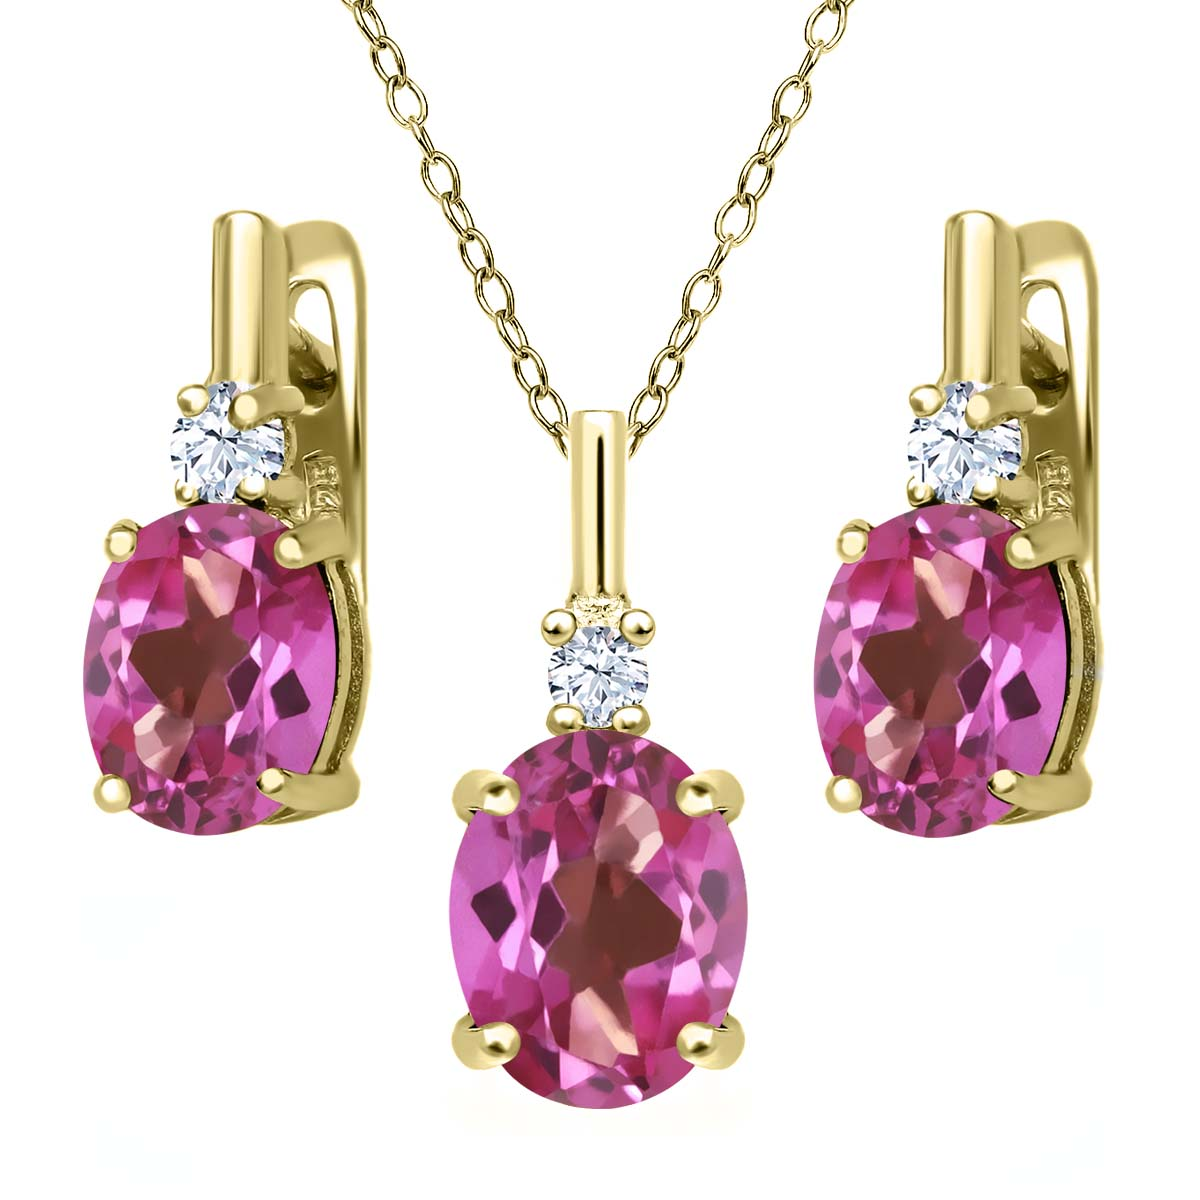 6.98 Ct Pink Mystic Topaz White Topaz 18K Yellow Gold Plated Silver Pendant Earrings Set by